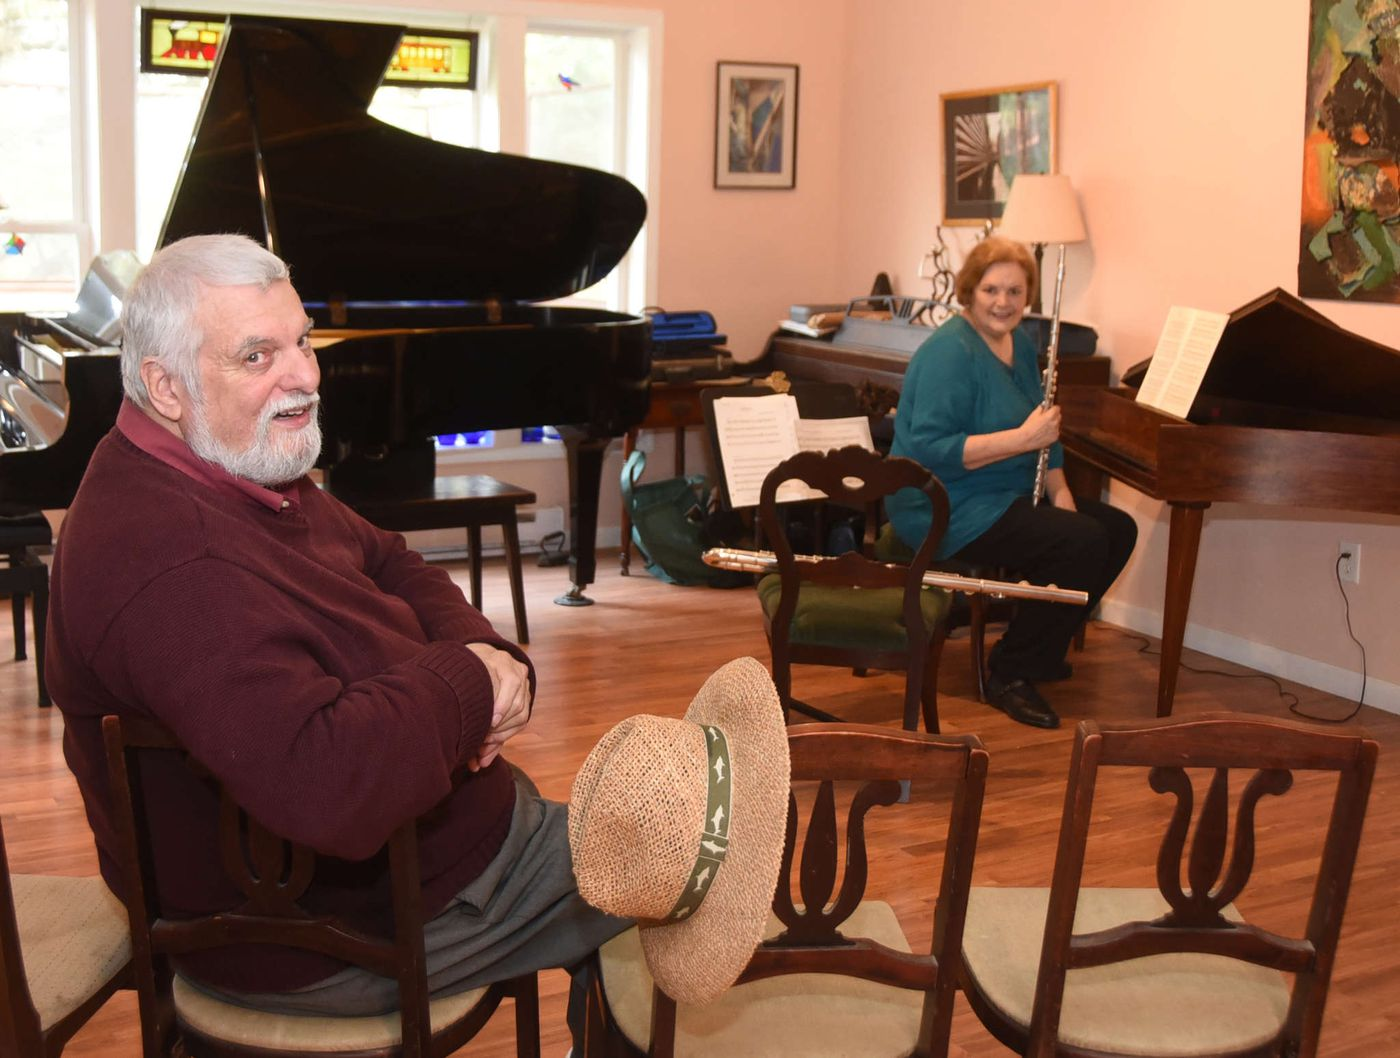 At home, chamber music in South Jersey hits all the right notes